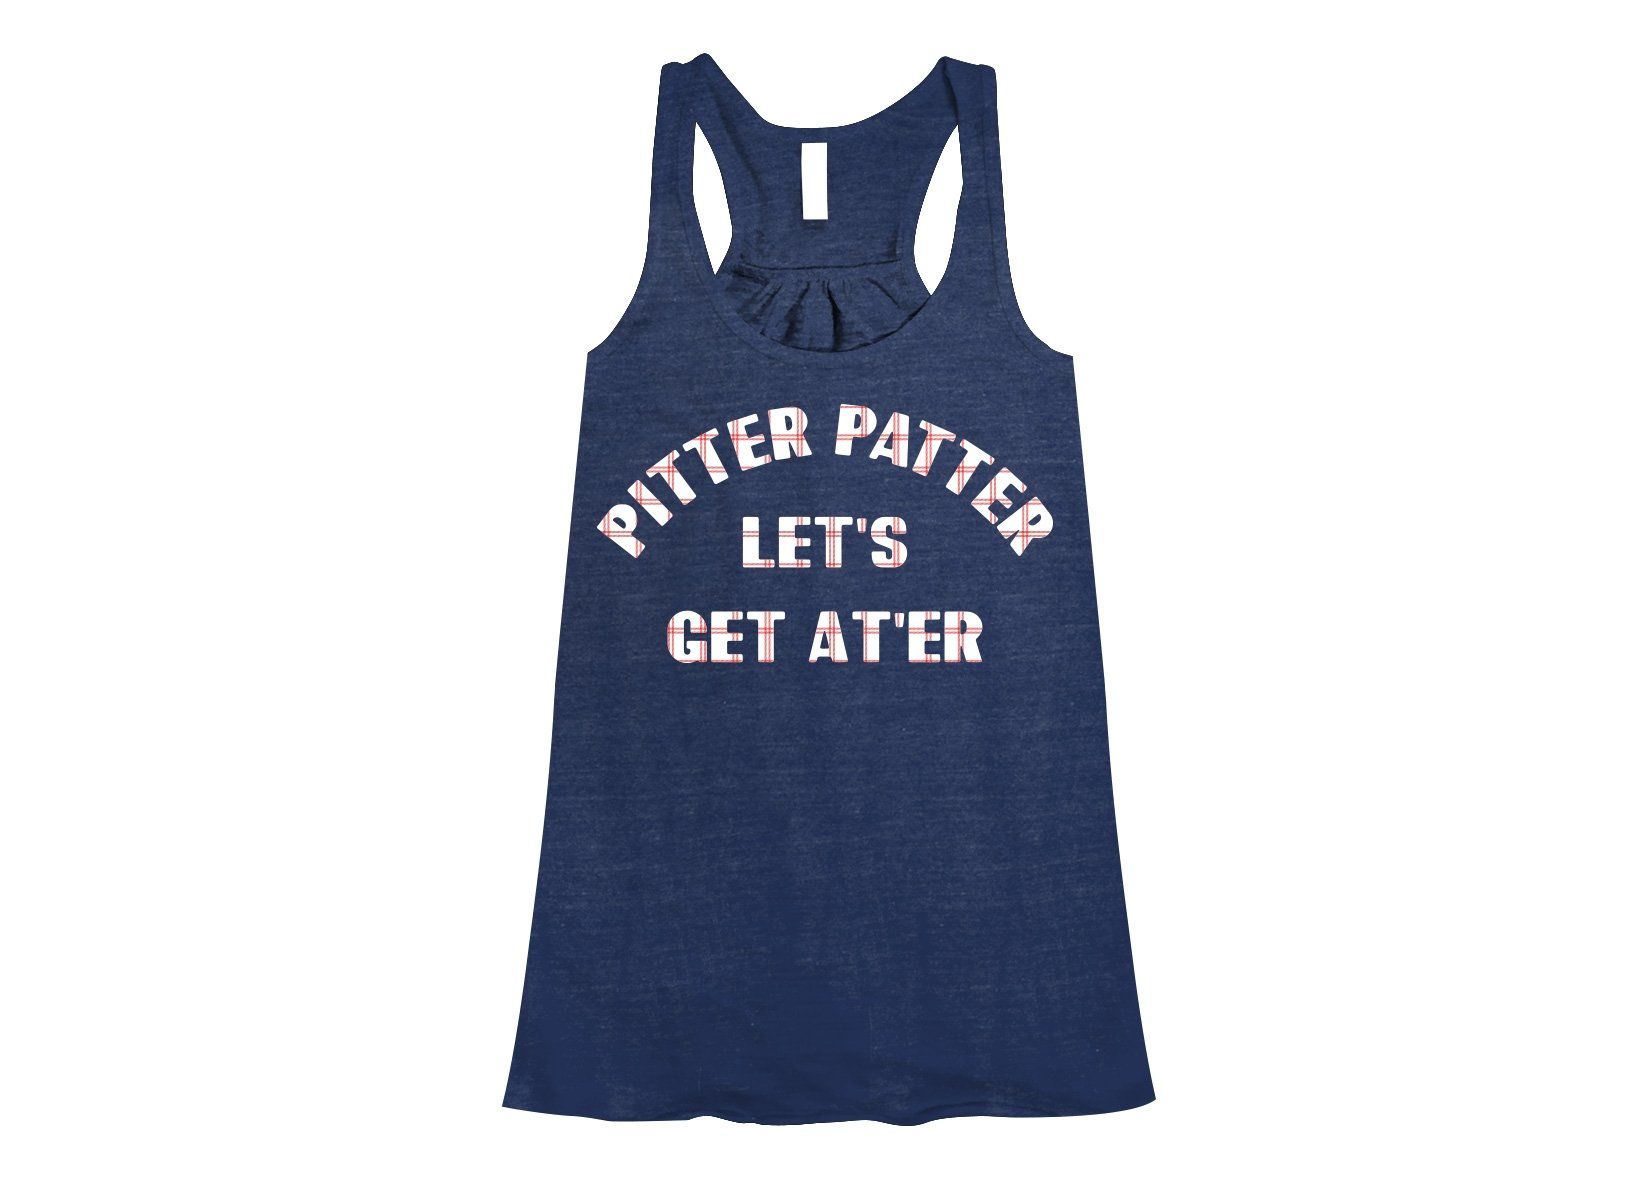 Pitter Patter Let's Get At'er on Womens Tanks T-Shirt